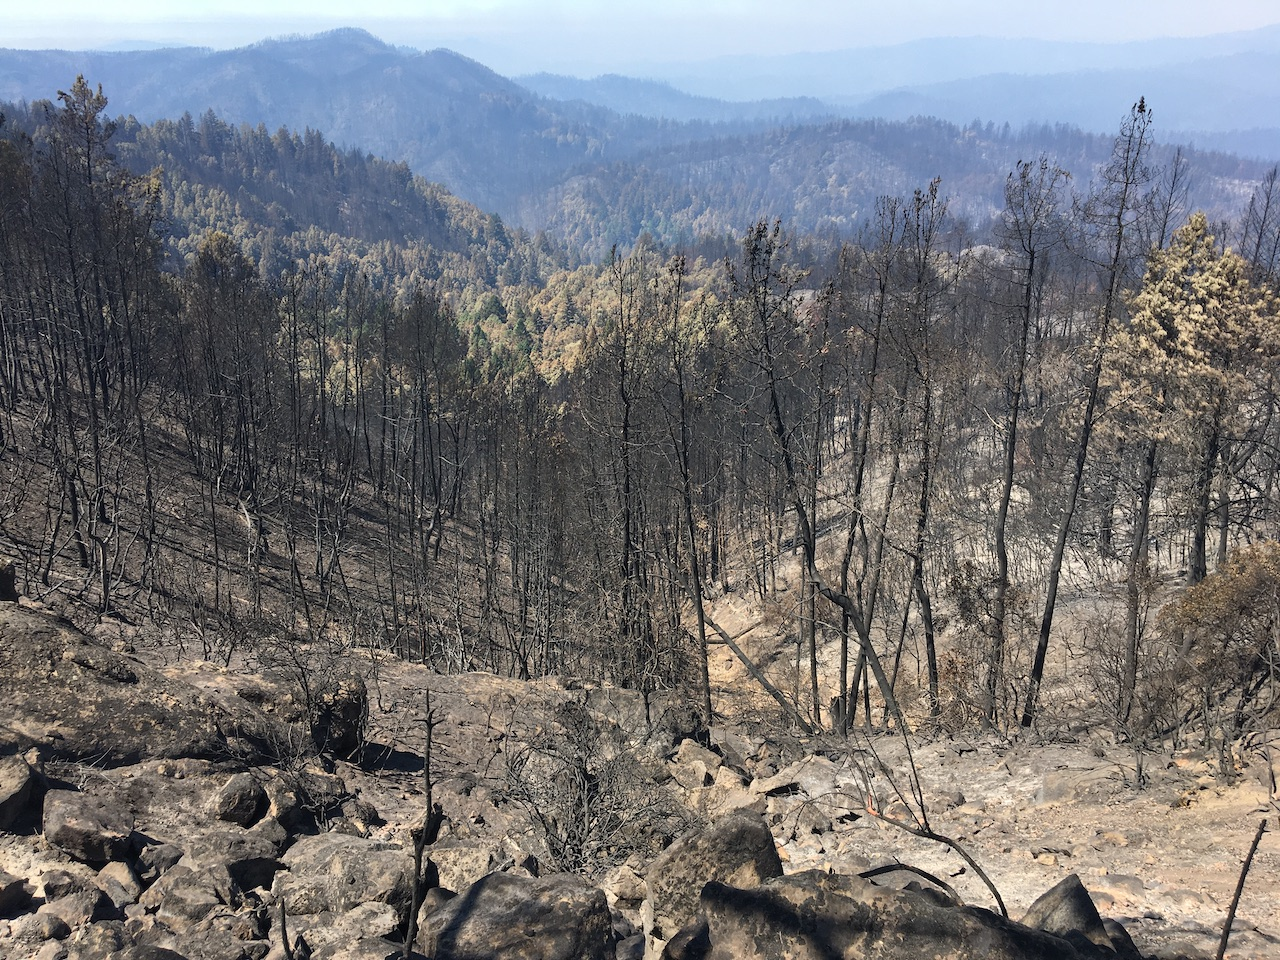 2020 wildfire aftermath at Big Basin Redwoods State Park